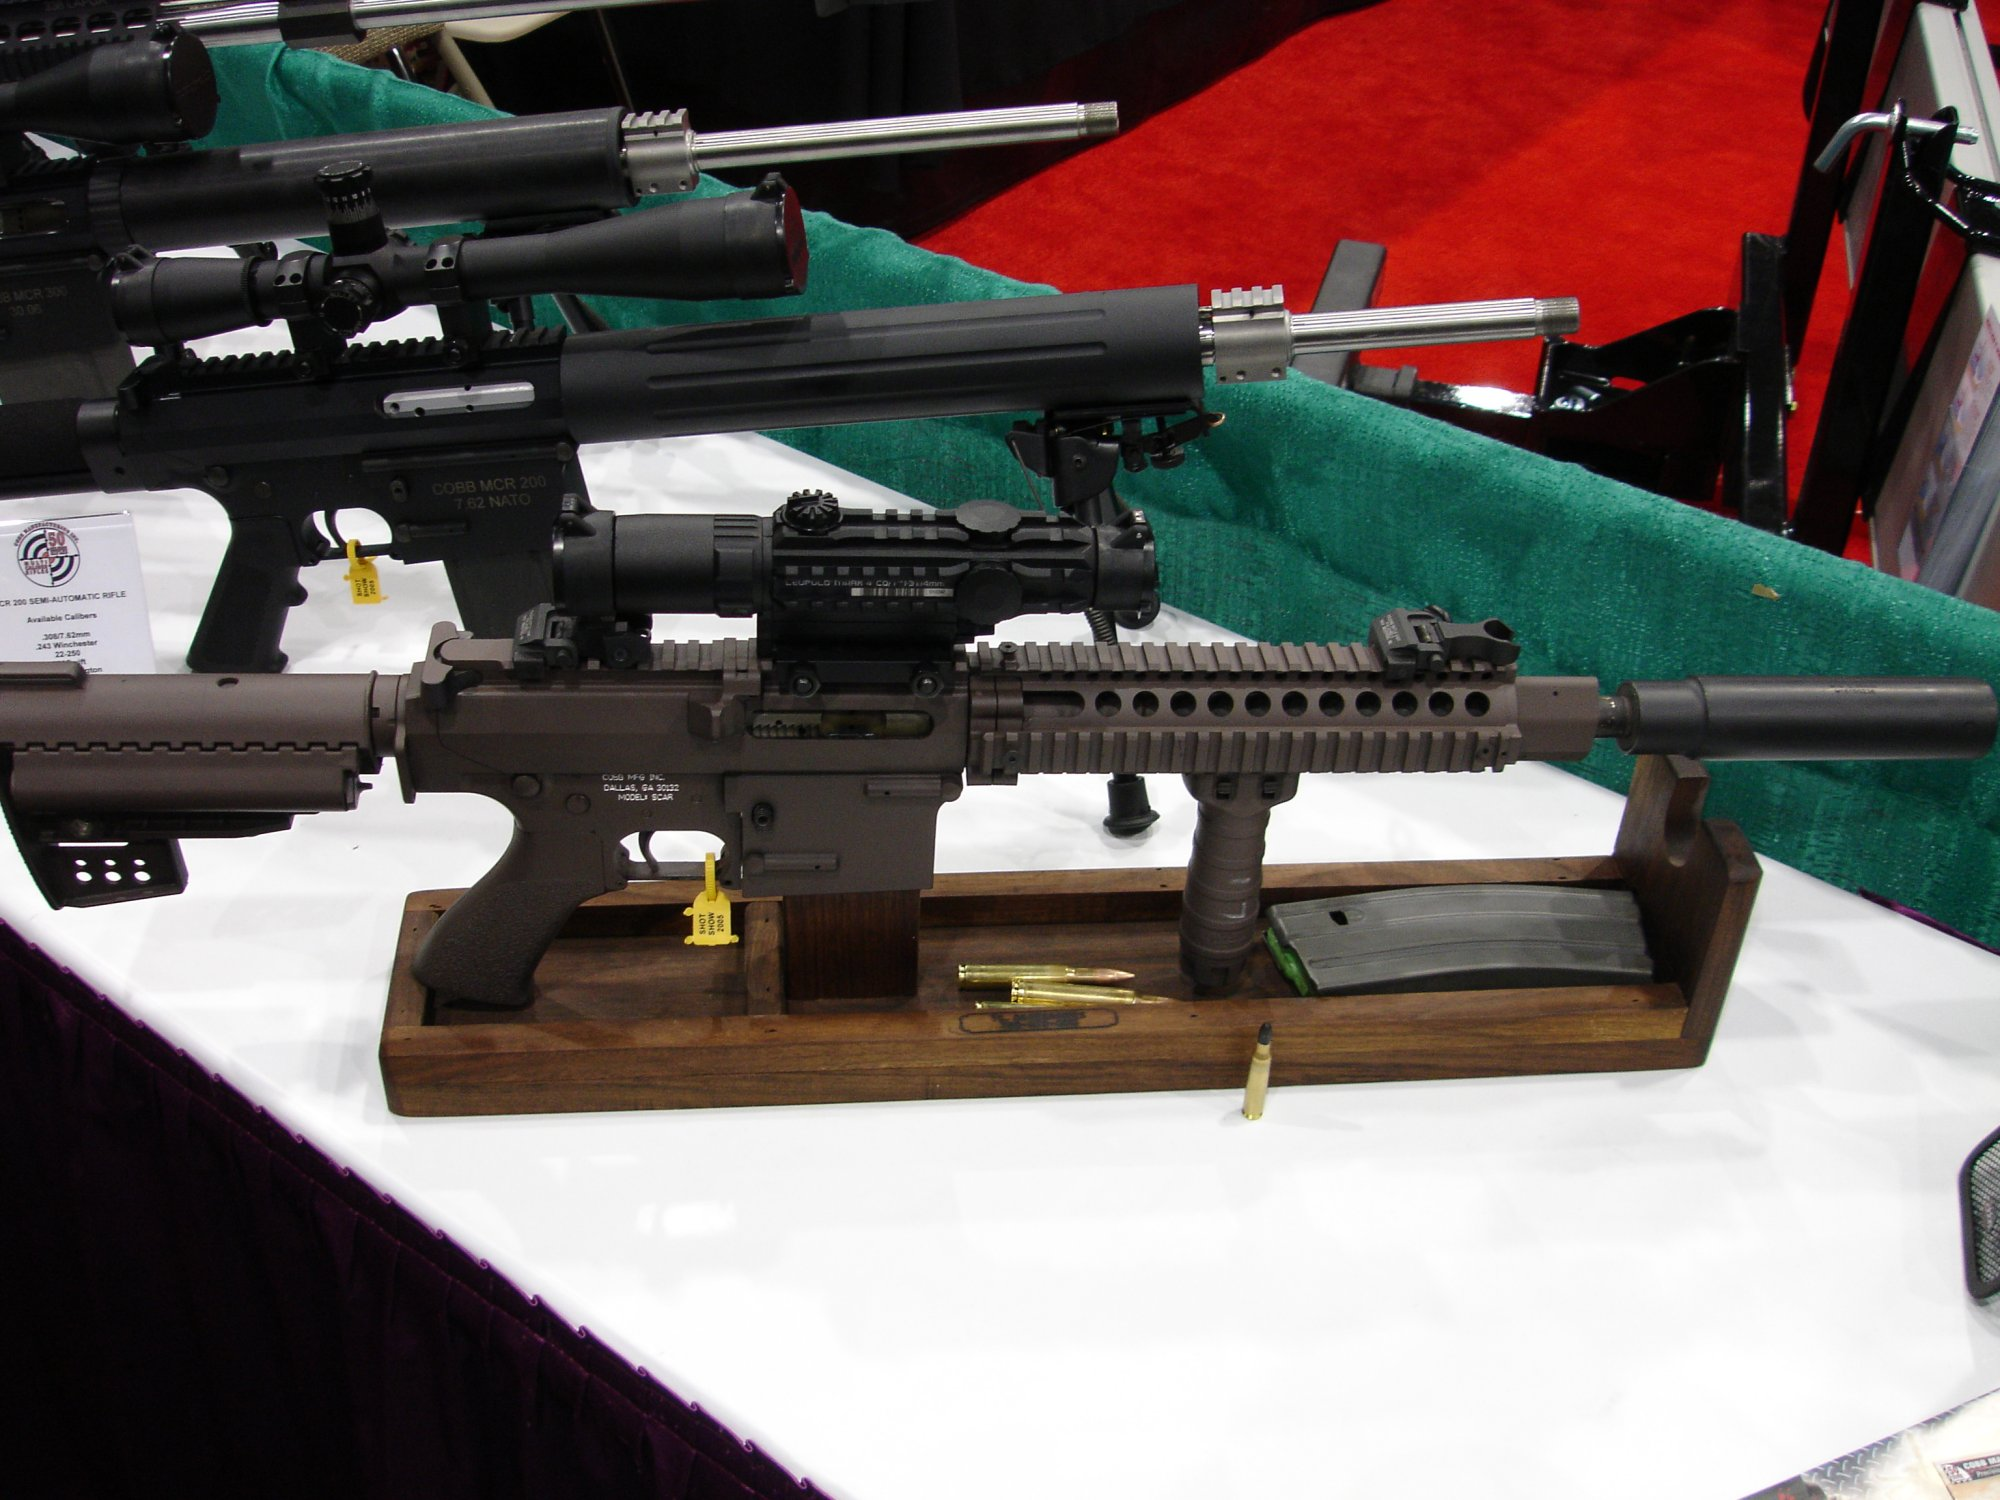 CobbMCR SCARprototype.308 3 <!  :en  >Cobb SCAR Candidate/MCR Prototype Weapons at SHOT Show 2005<!  :  >